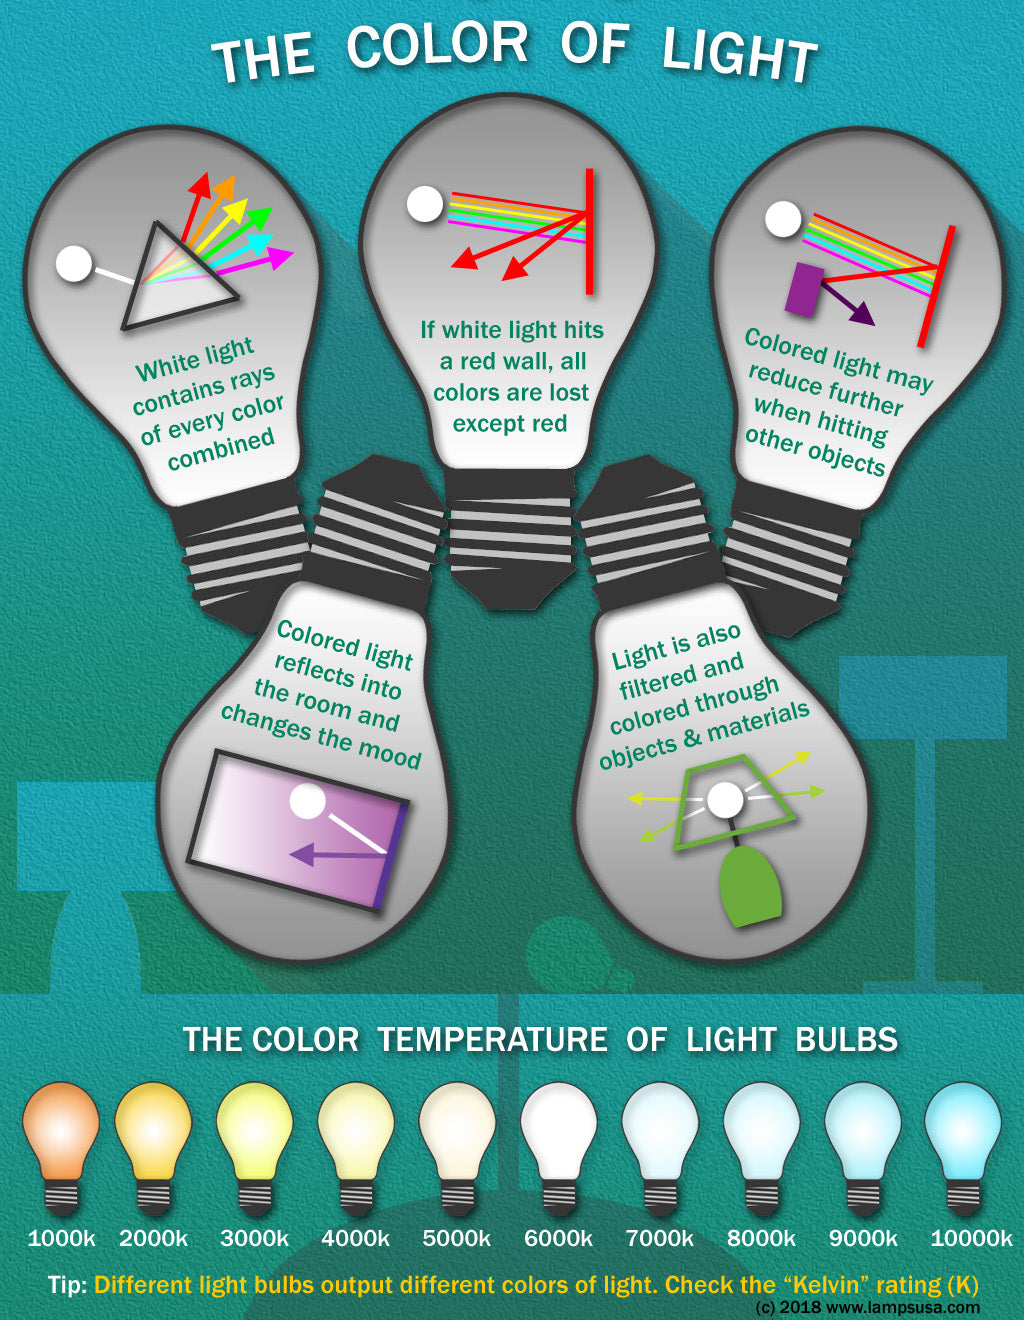 the color of light - light bulbs and kelvin lumens